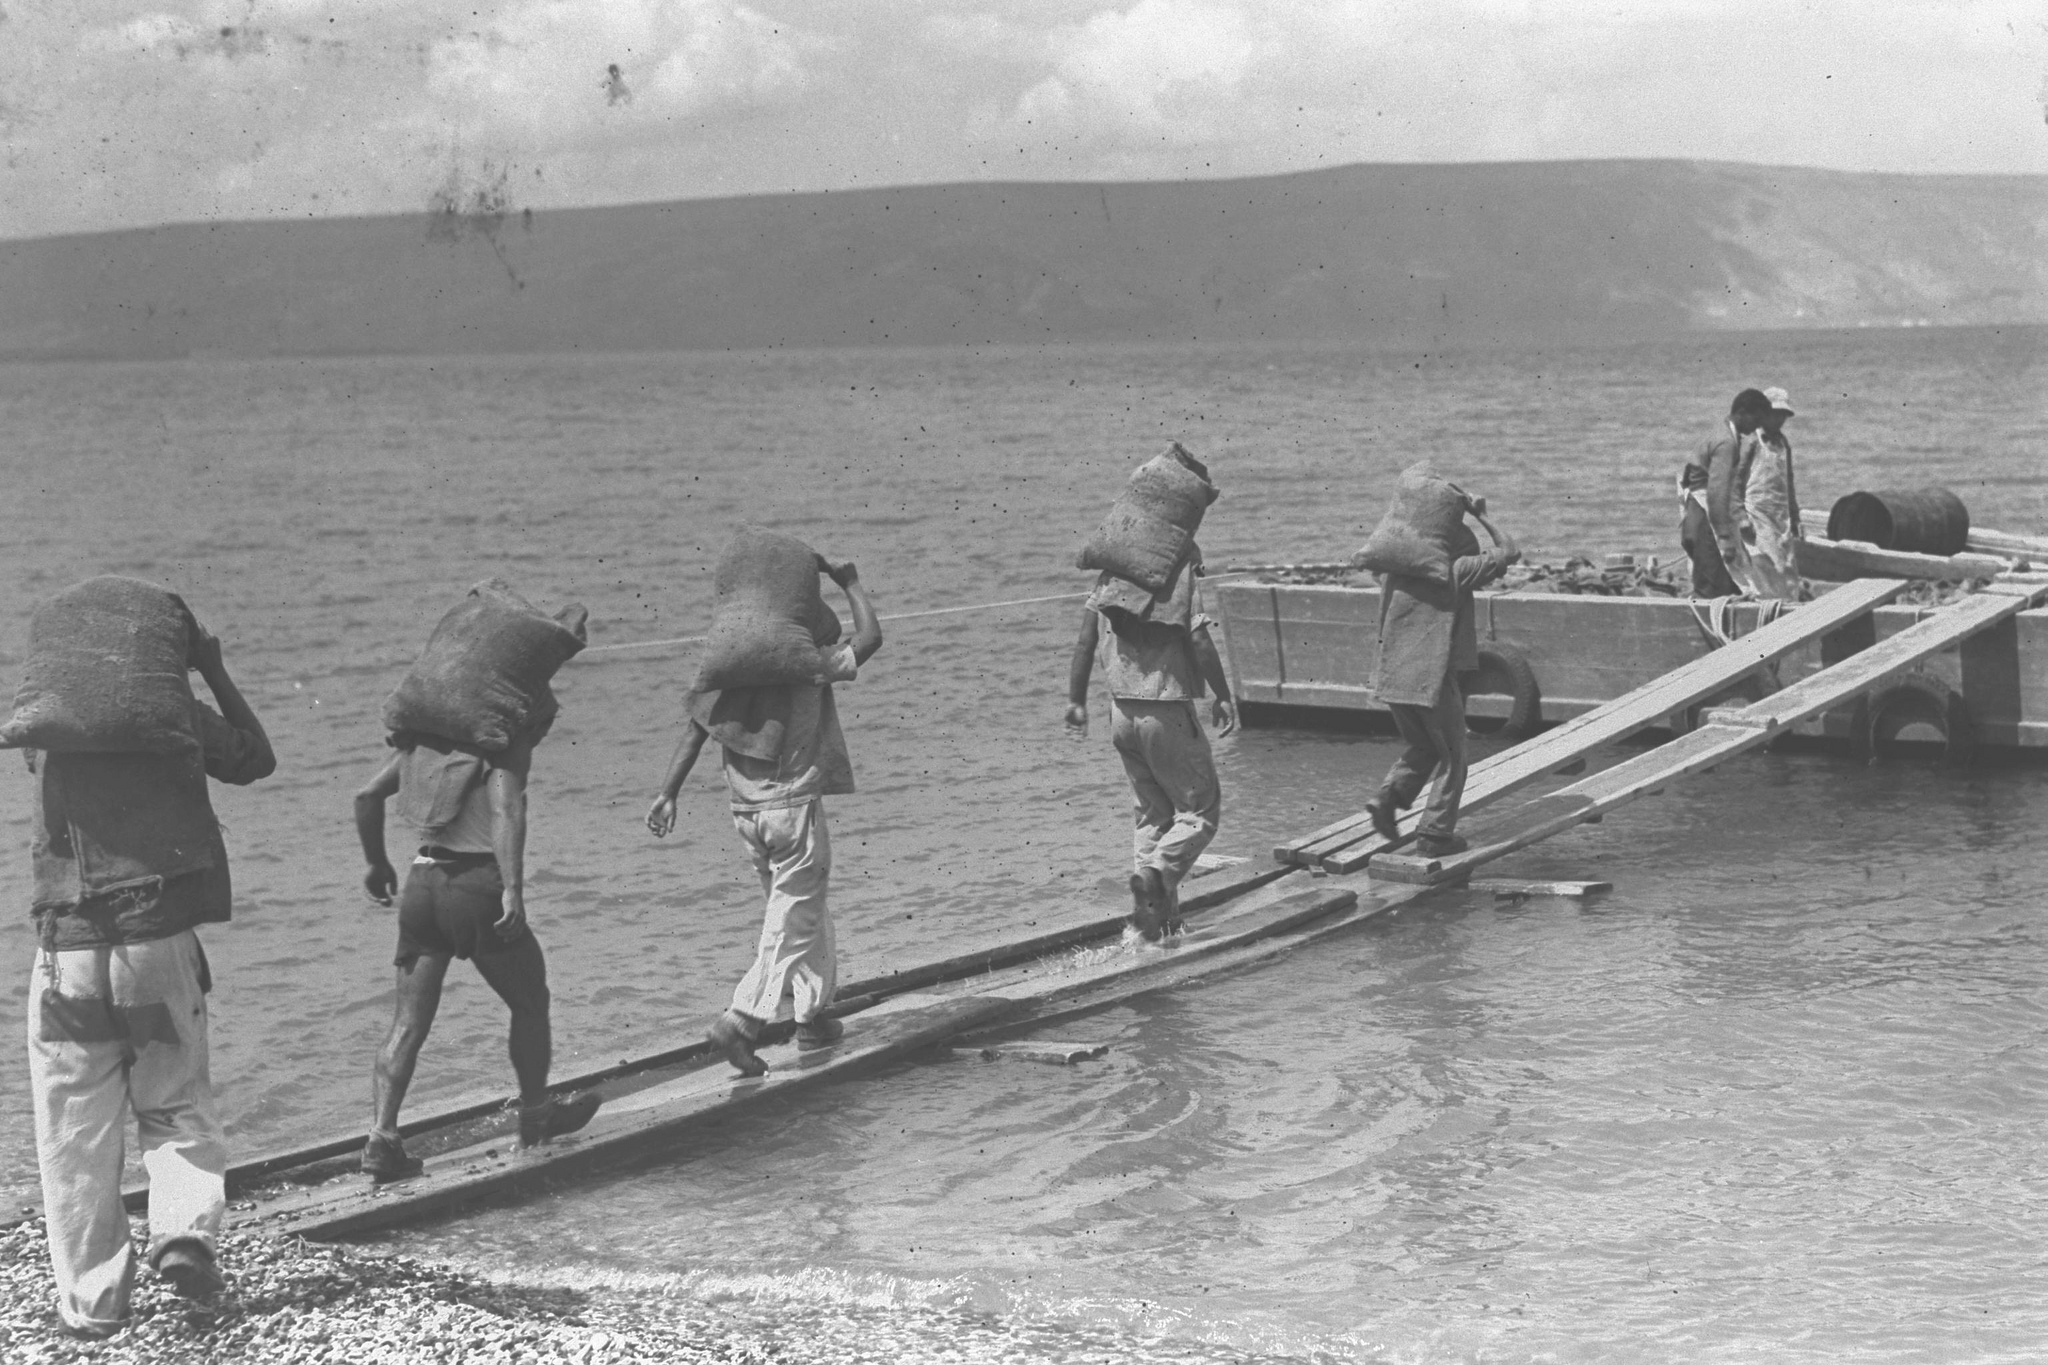 Men build the breakwater of a fishing port on the eastern shore of the Sea of Galilee in the early 20th century. Zoltan Kluger/Government Press Office.